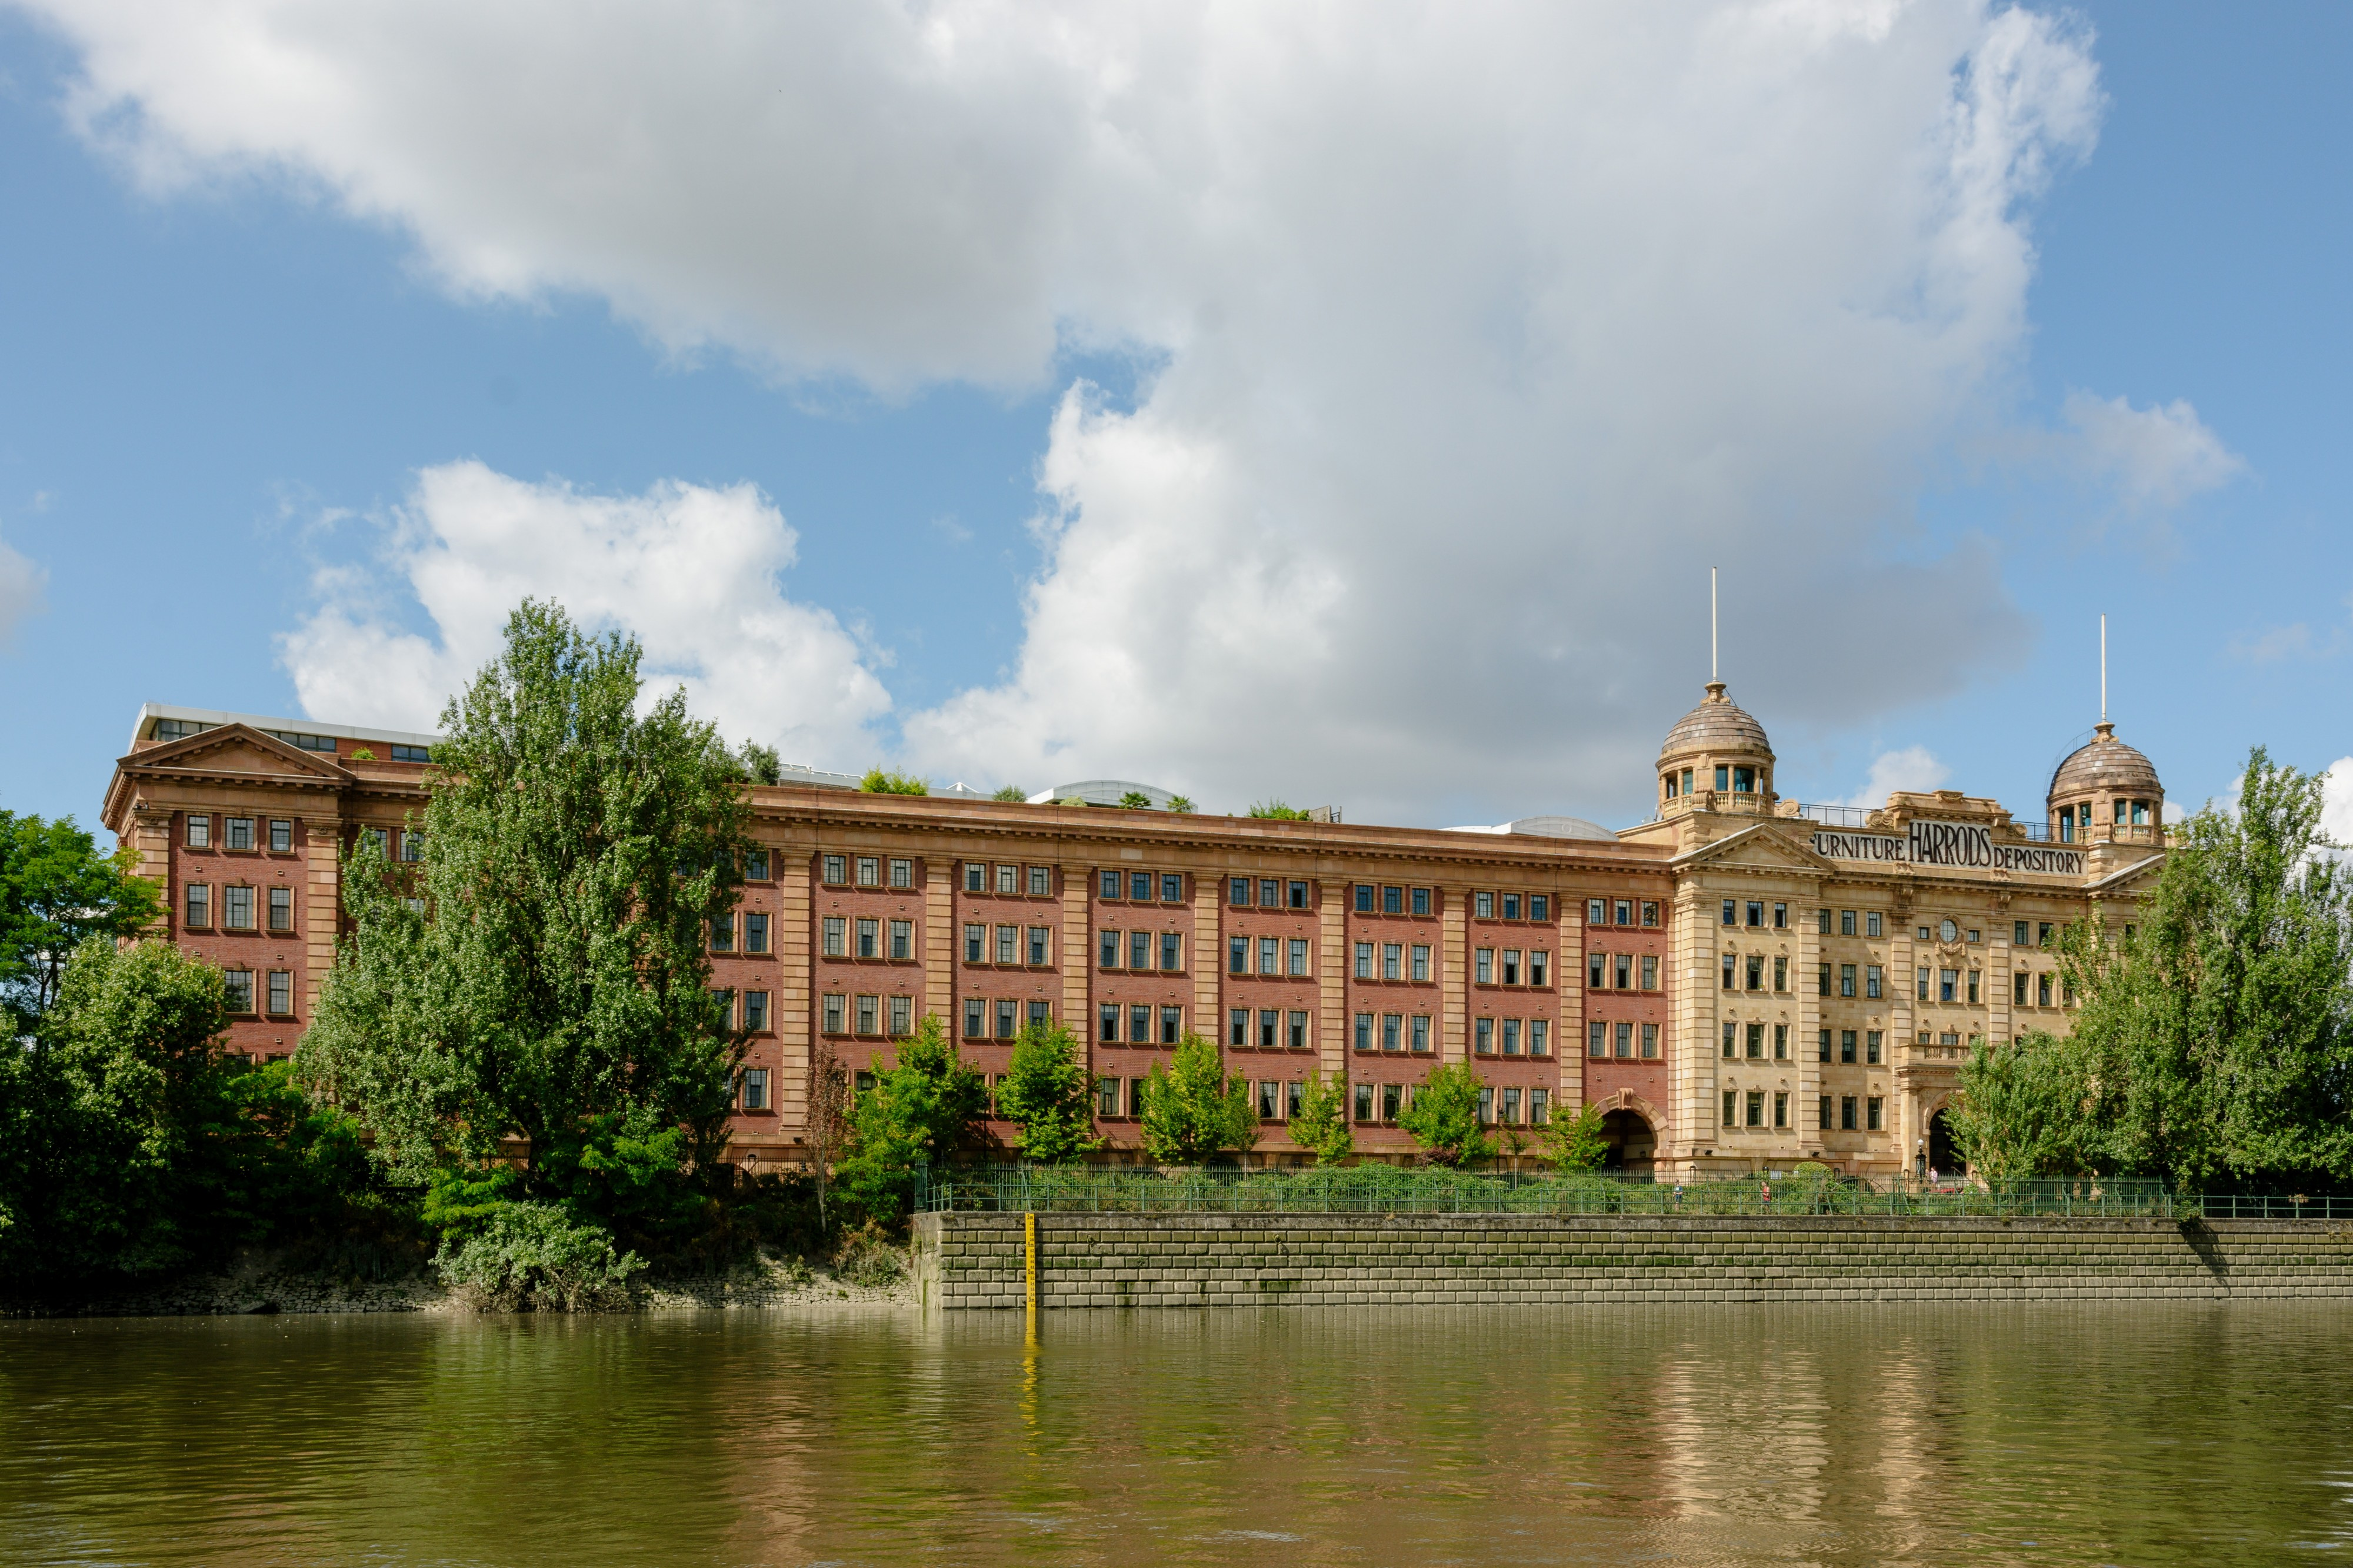 Harrods Furniture Depository 7073